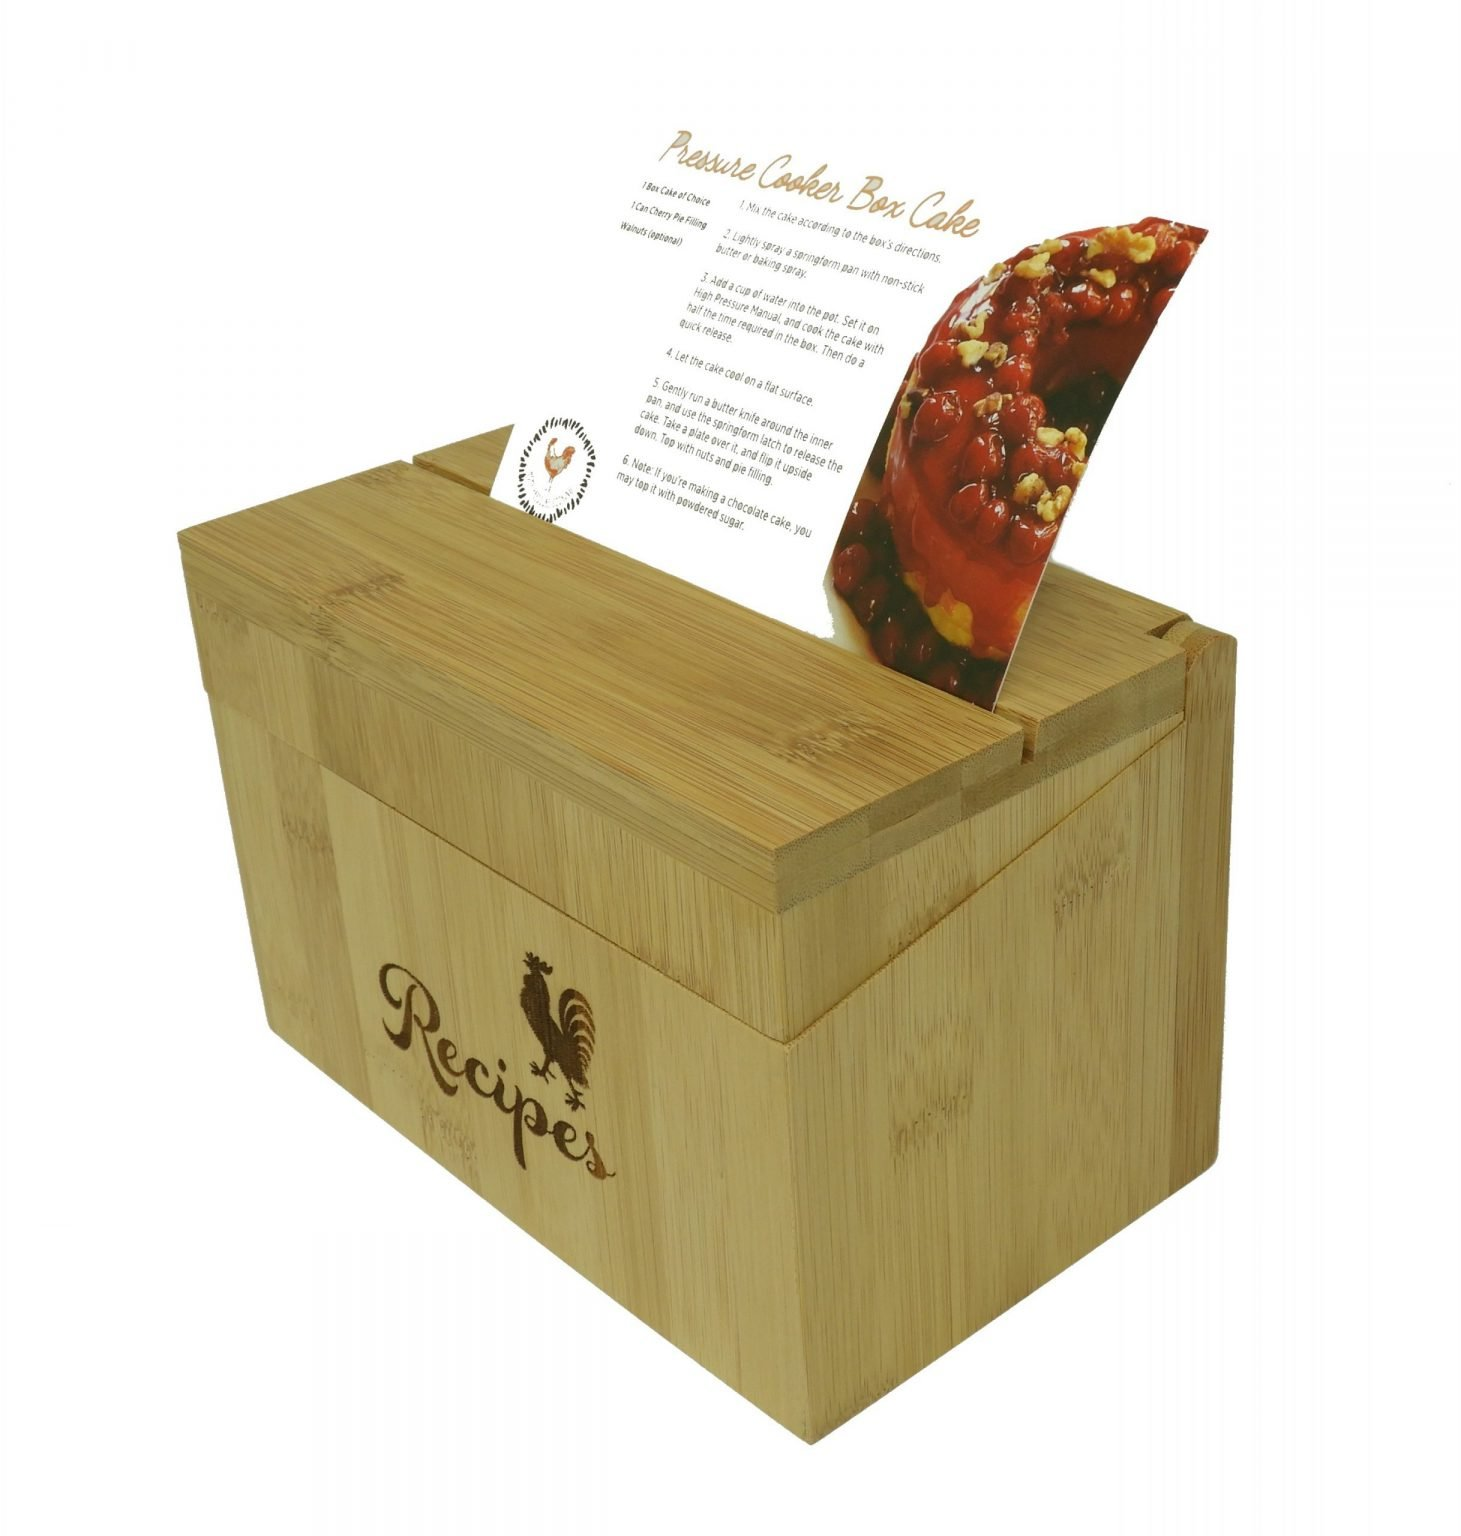 The insta-recipe box with a recipe card resting in the slot on the lid.